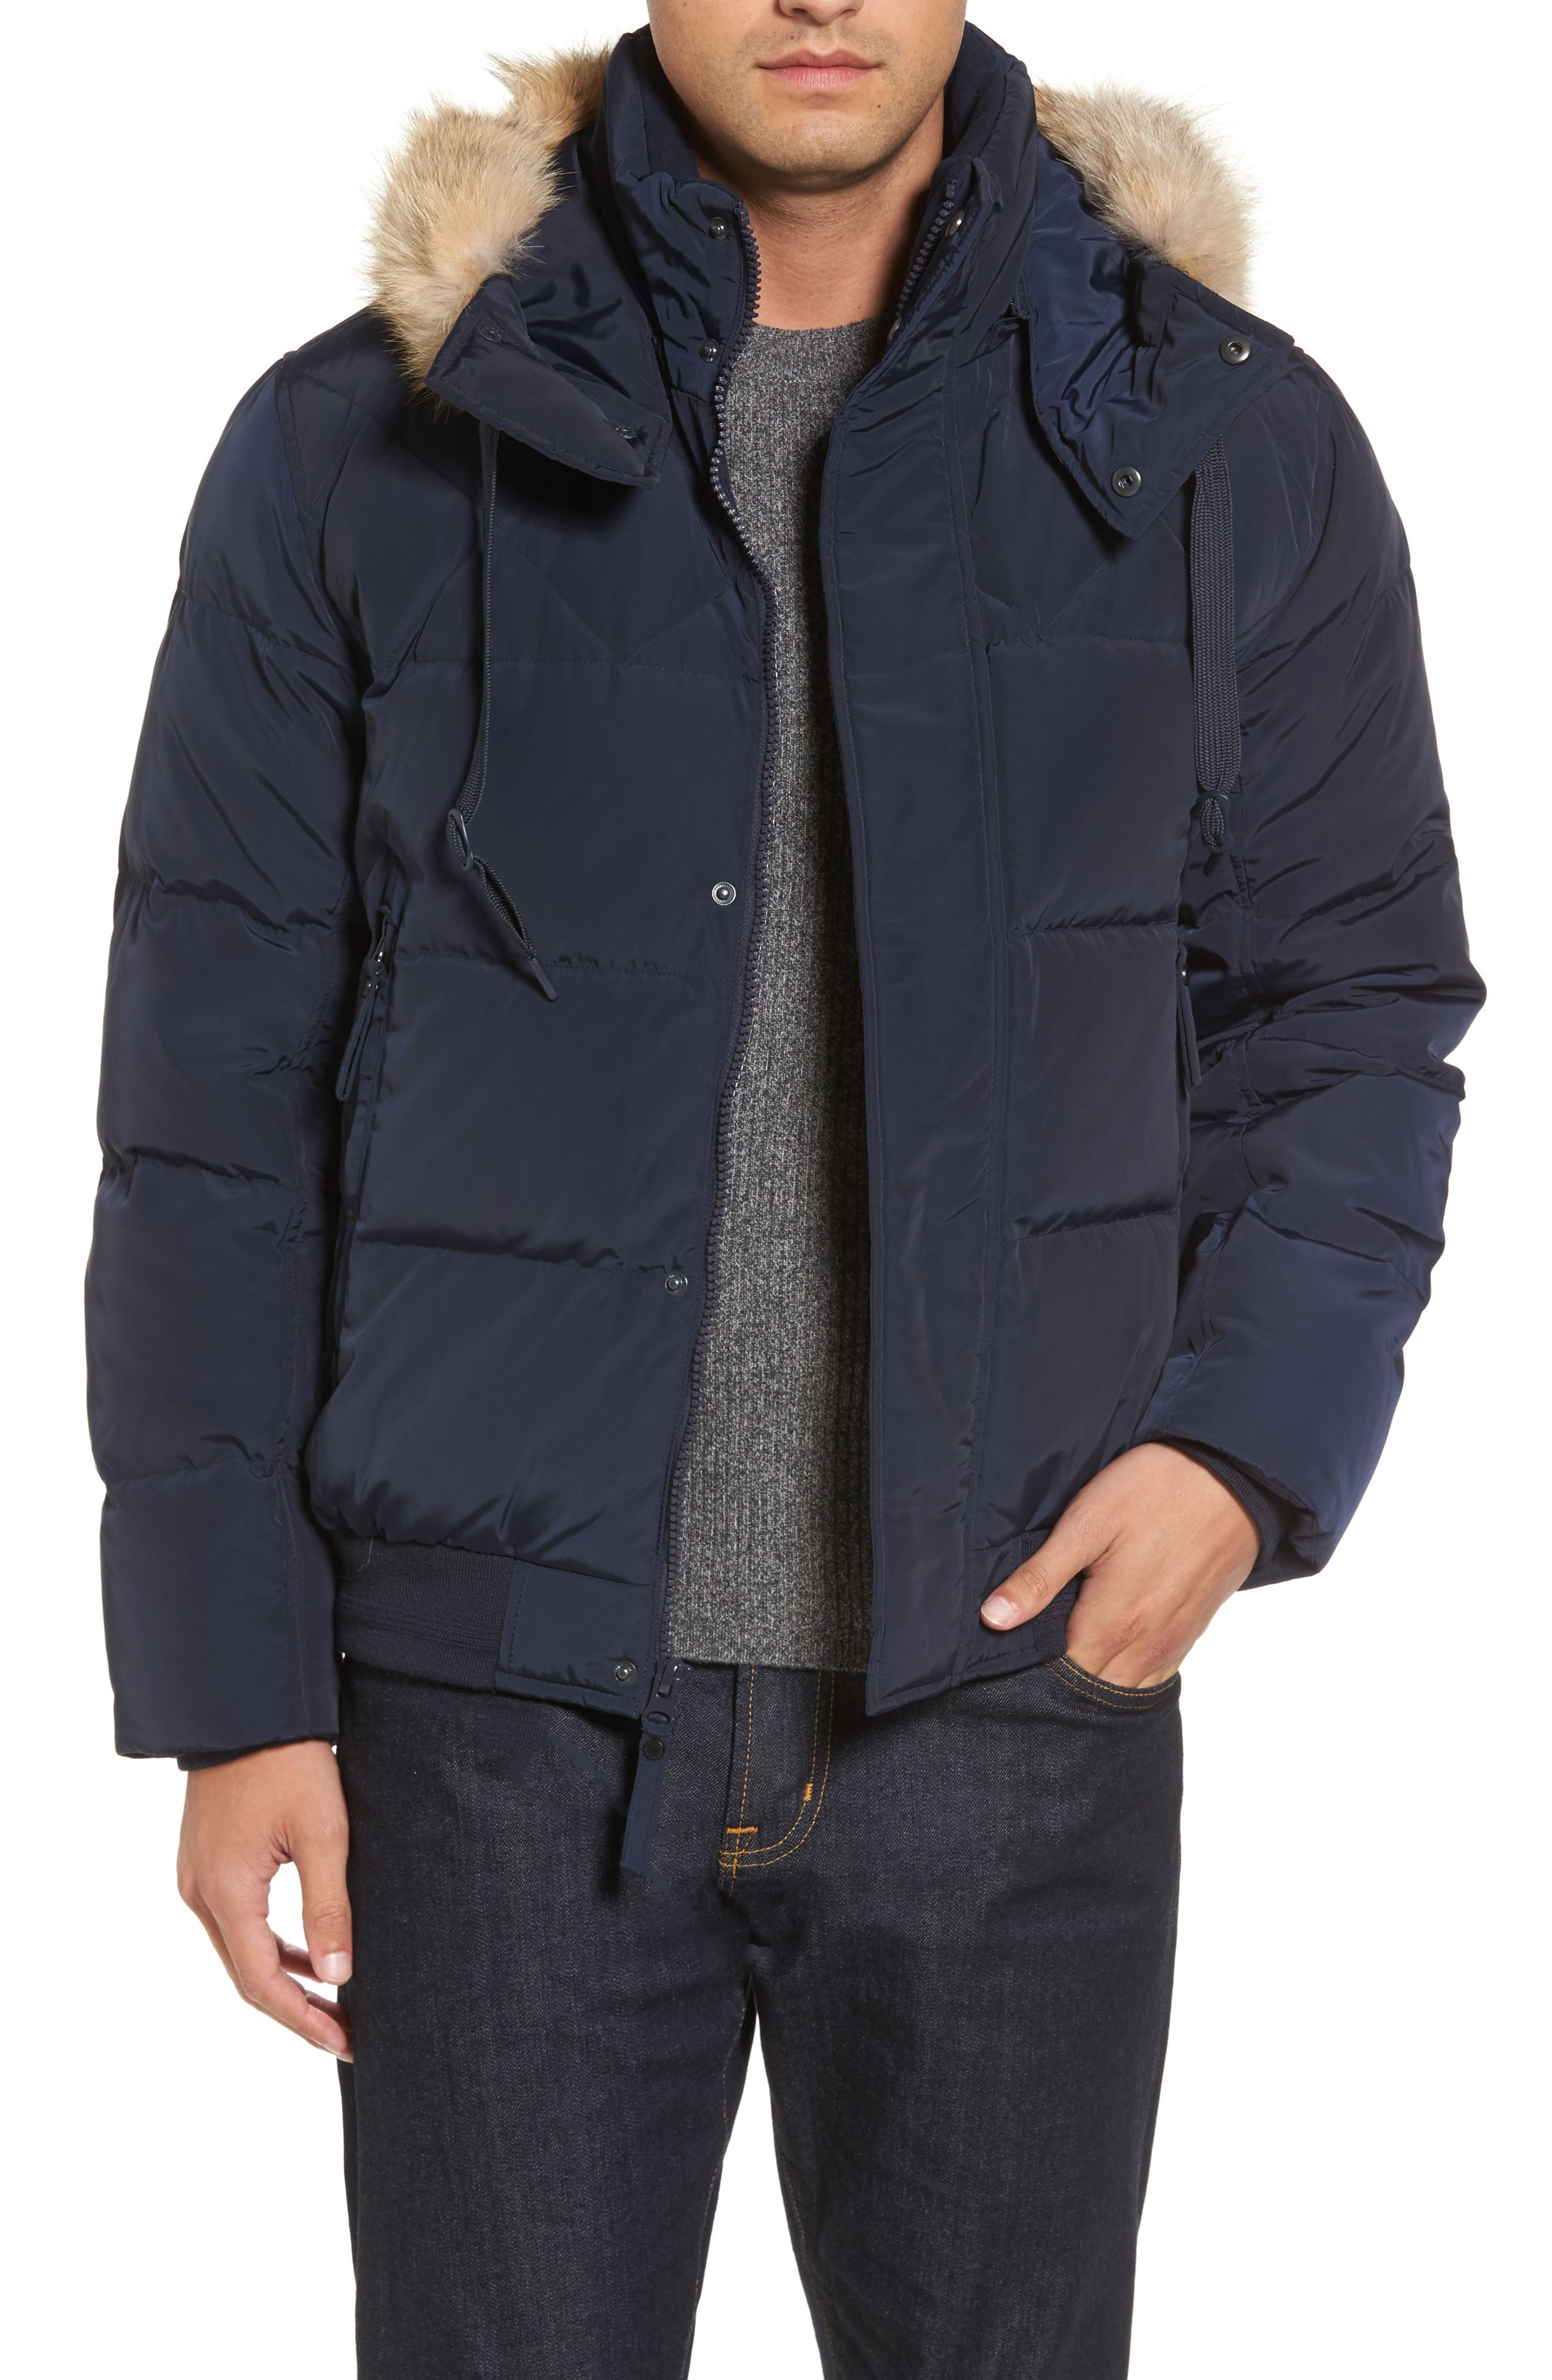 Main Image - Marc New York Insulated Jacket with Genuine Coyote Fur